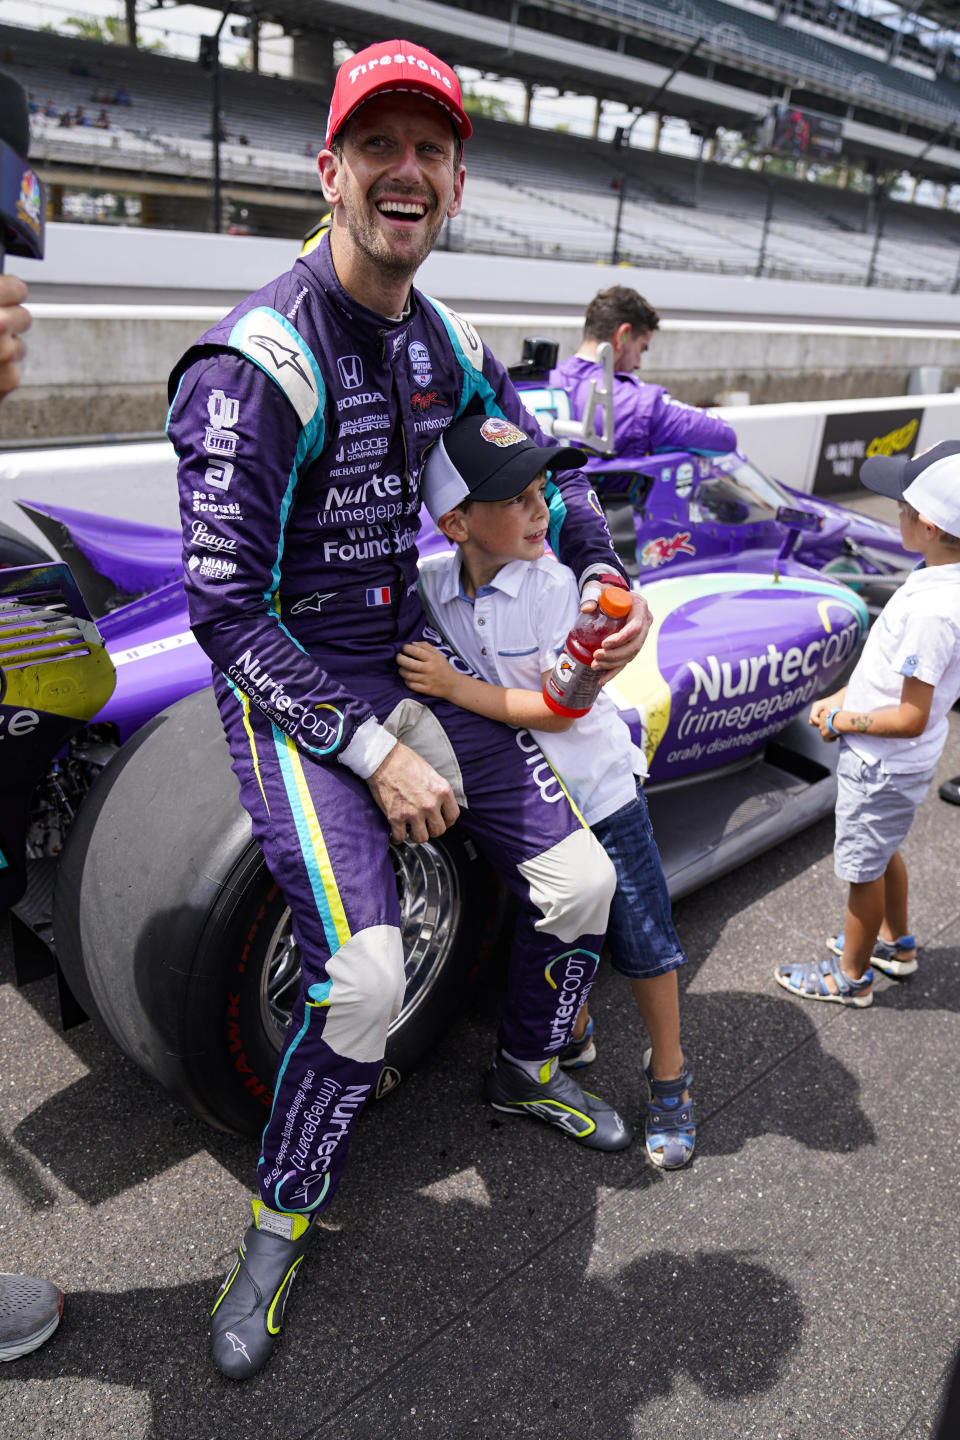 Romain Grosjean, of Switzerland, hugs his son Sacha after finishing second in the IndyCar auto race at Indianapolis Motor Speedway in Indianapolis, Saturday, Aug. 14, 2021. (AP Photo/Michael Conroy)